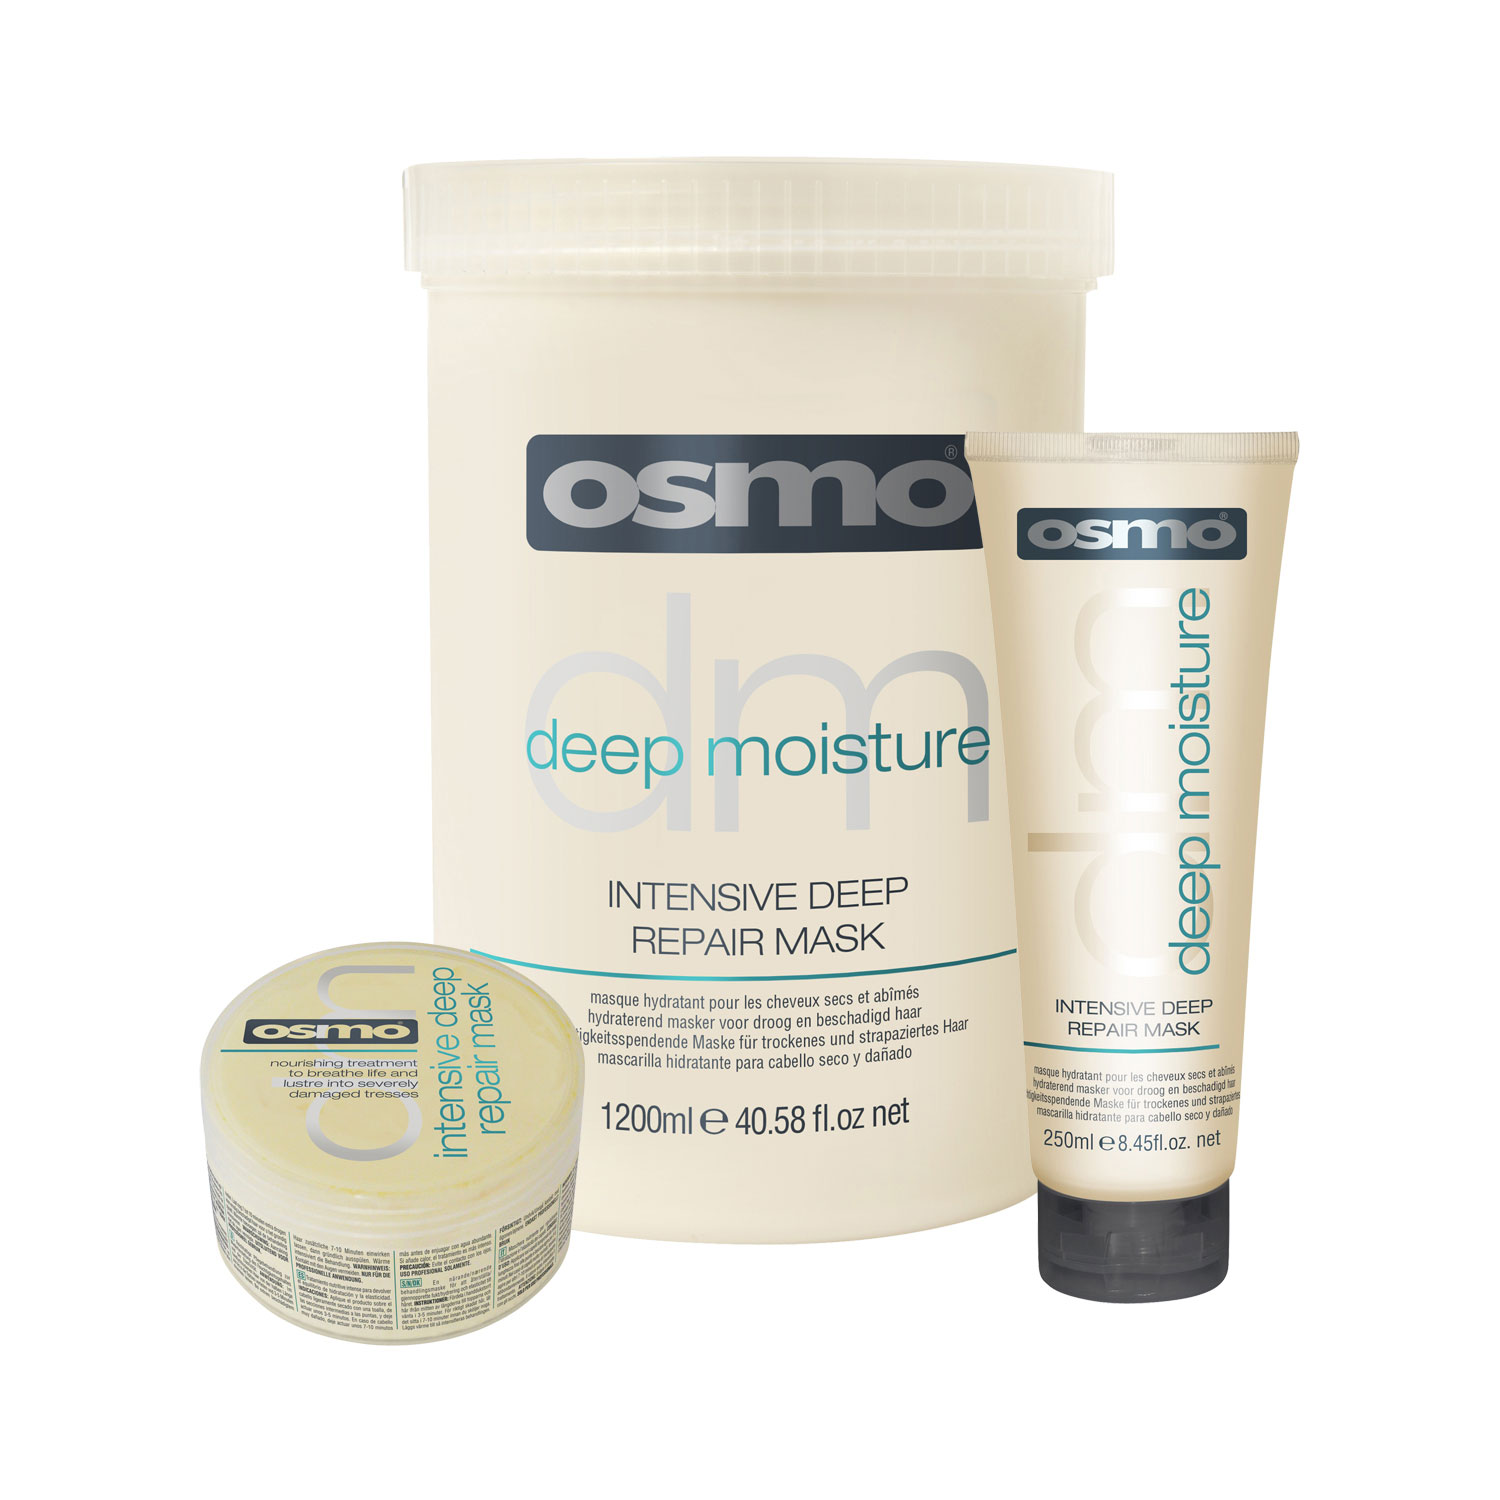 osmo intensive deep repair mask restores moisture elasticity for smooth hair. Black Bedroom Furniture Sets. Home Design Ideas